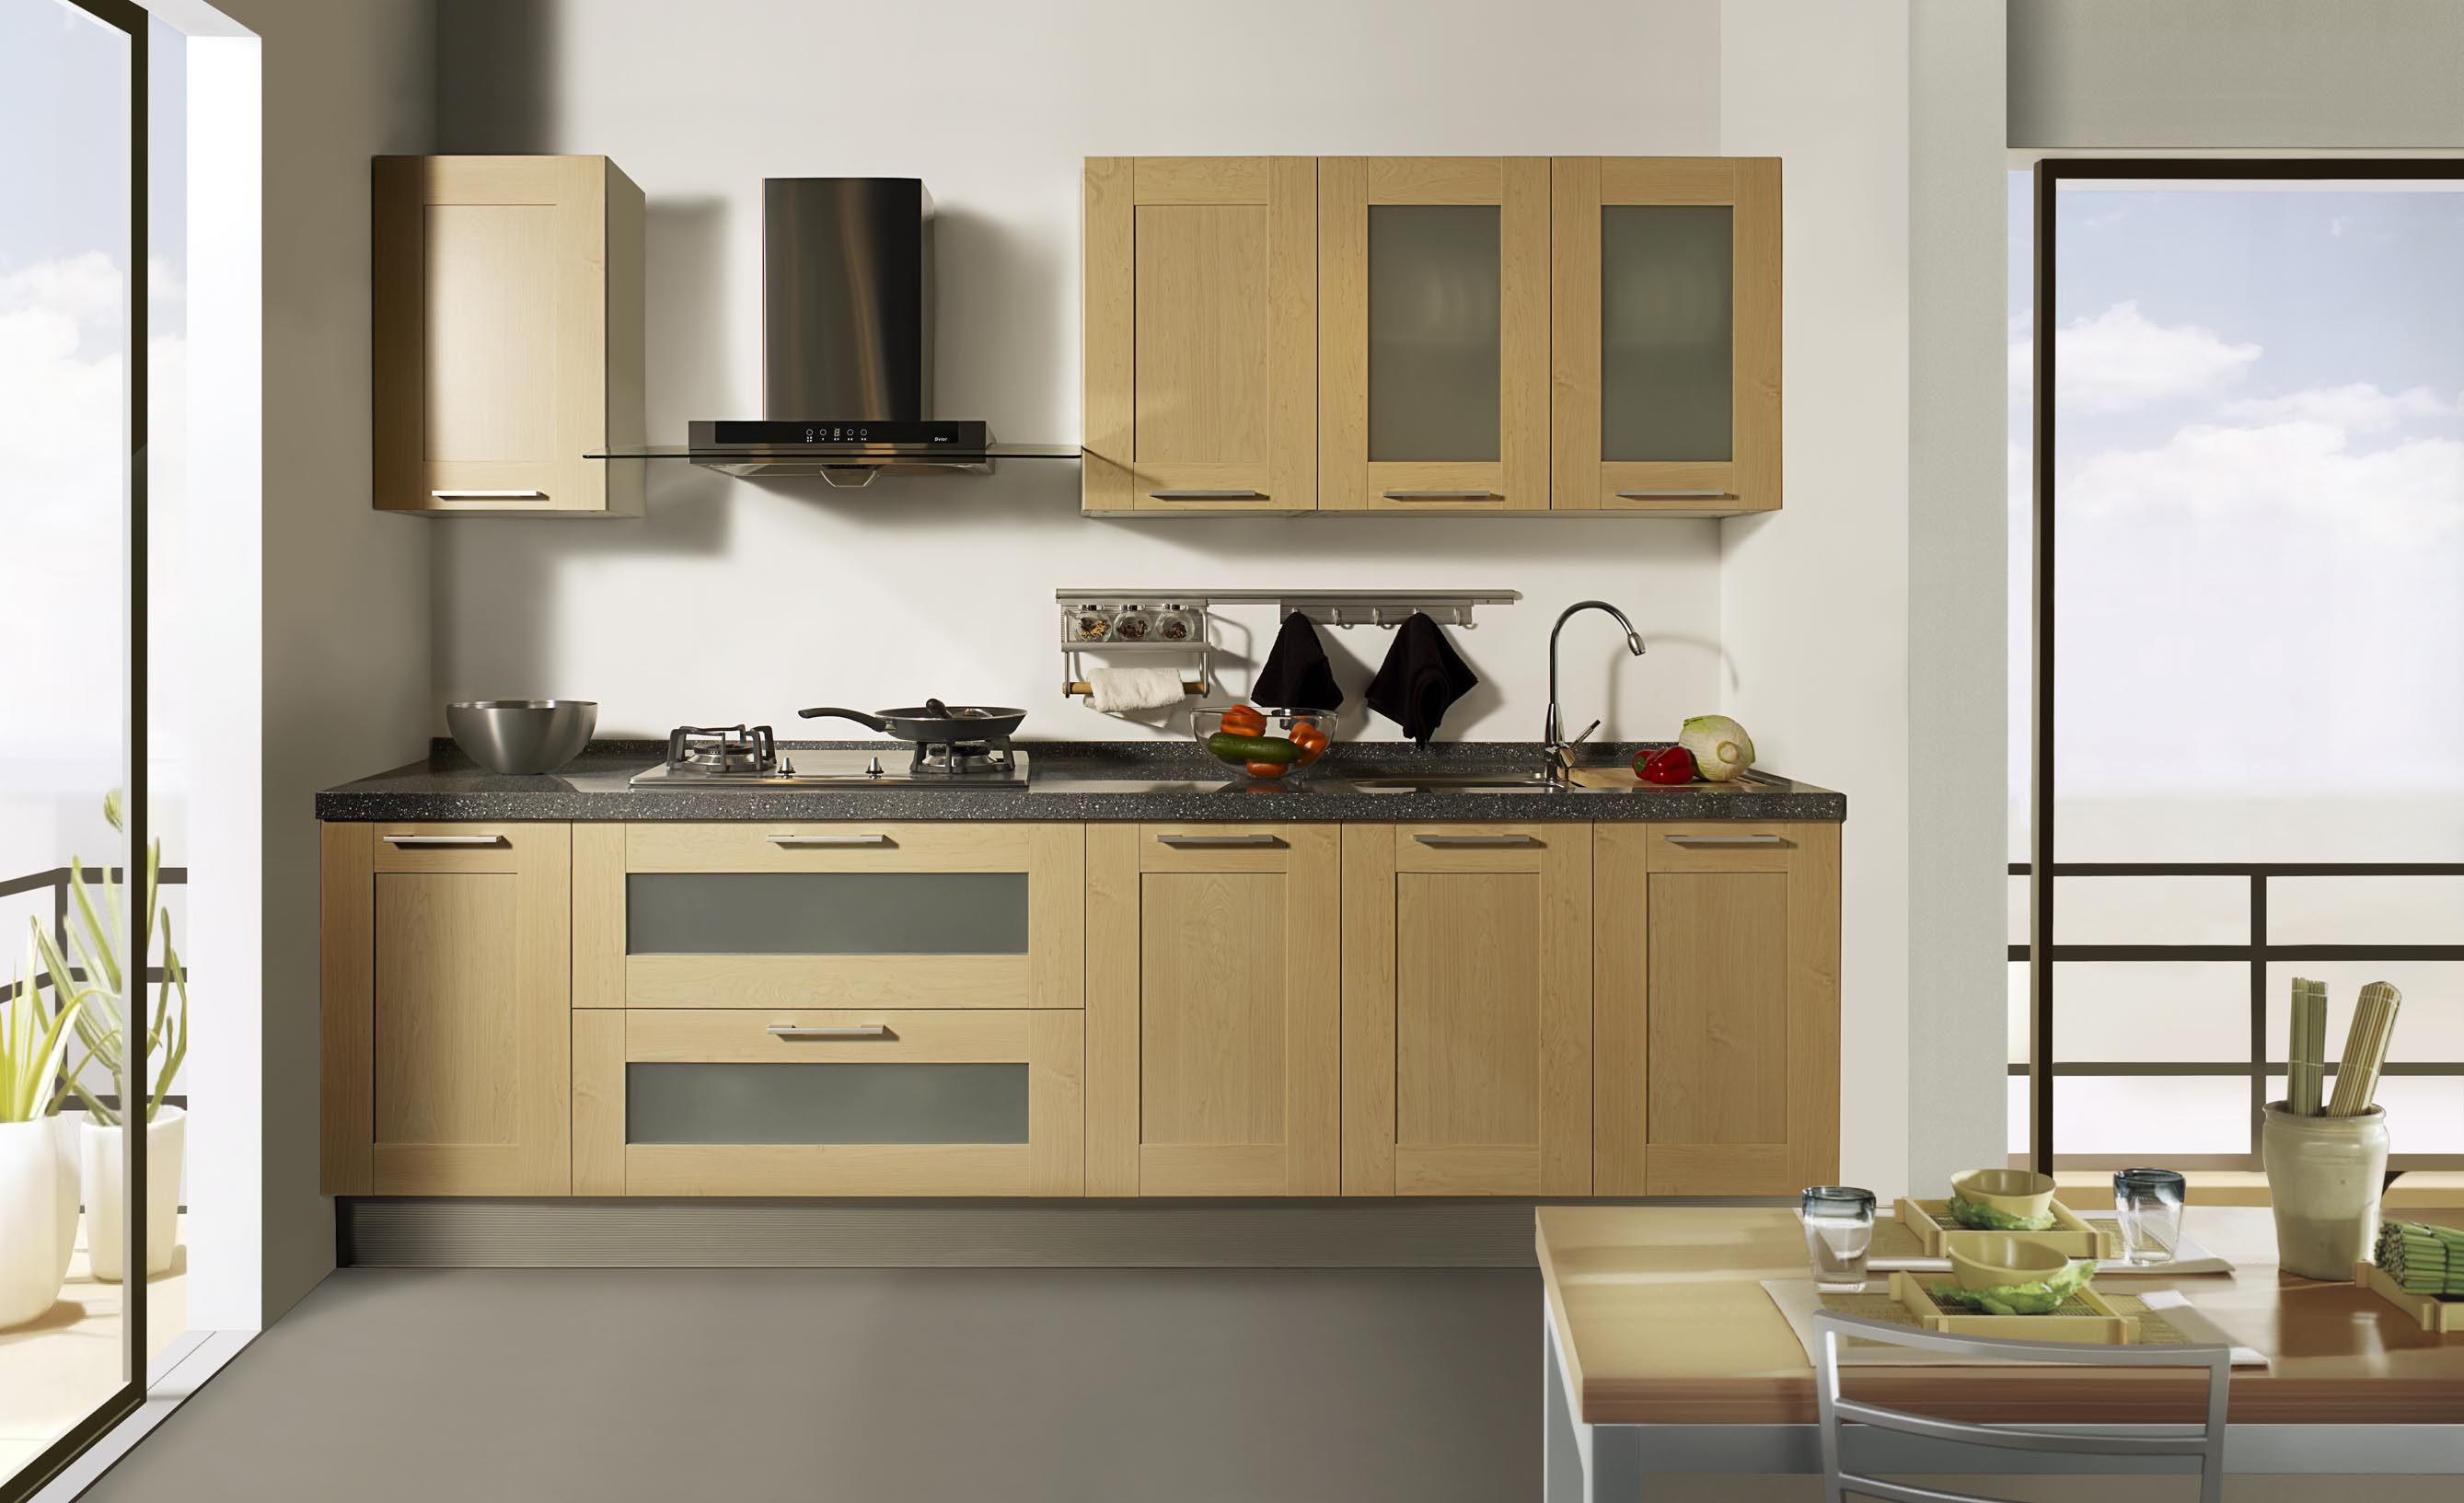 Natural Affordable Design Of The Kitchen Cabinets Models That Can ...